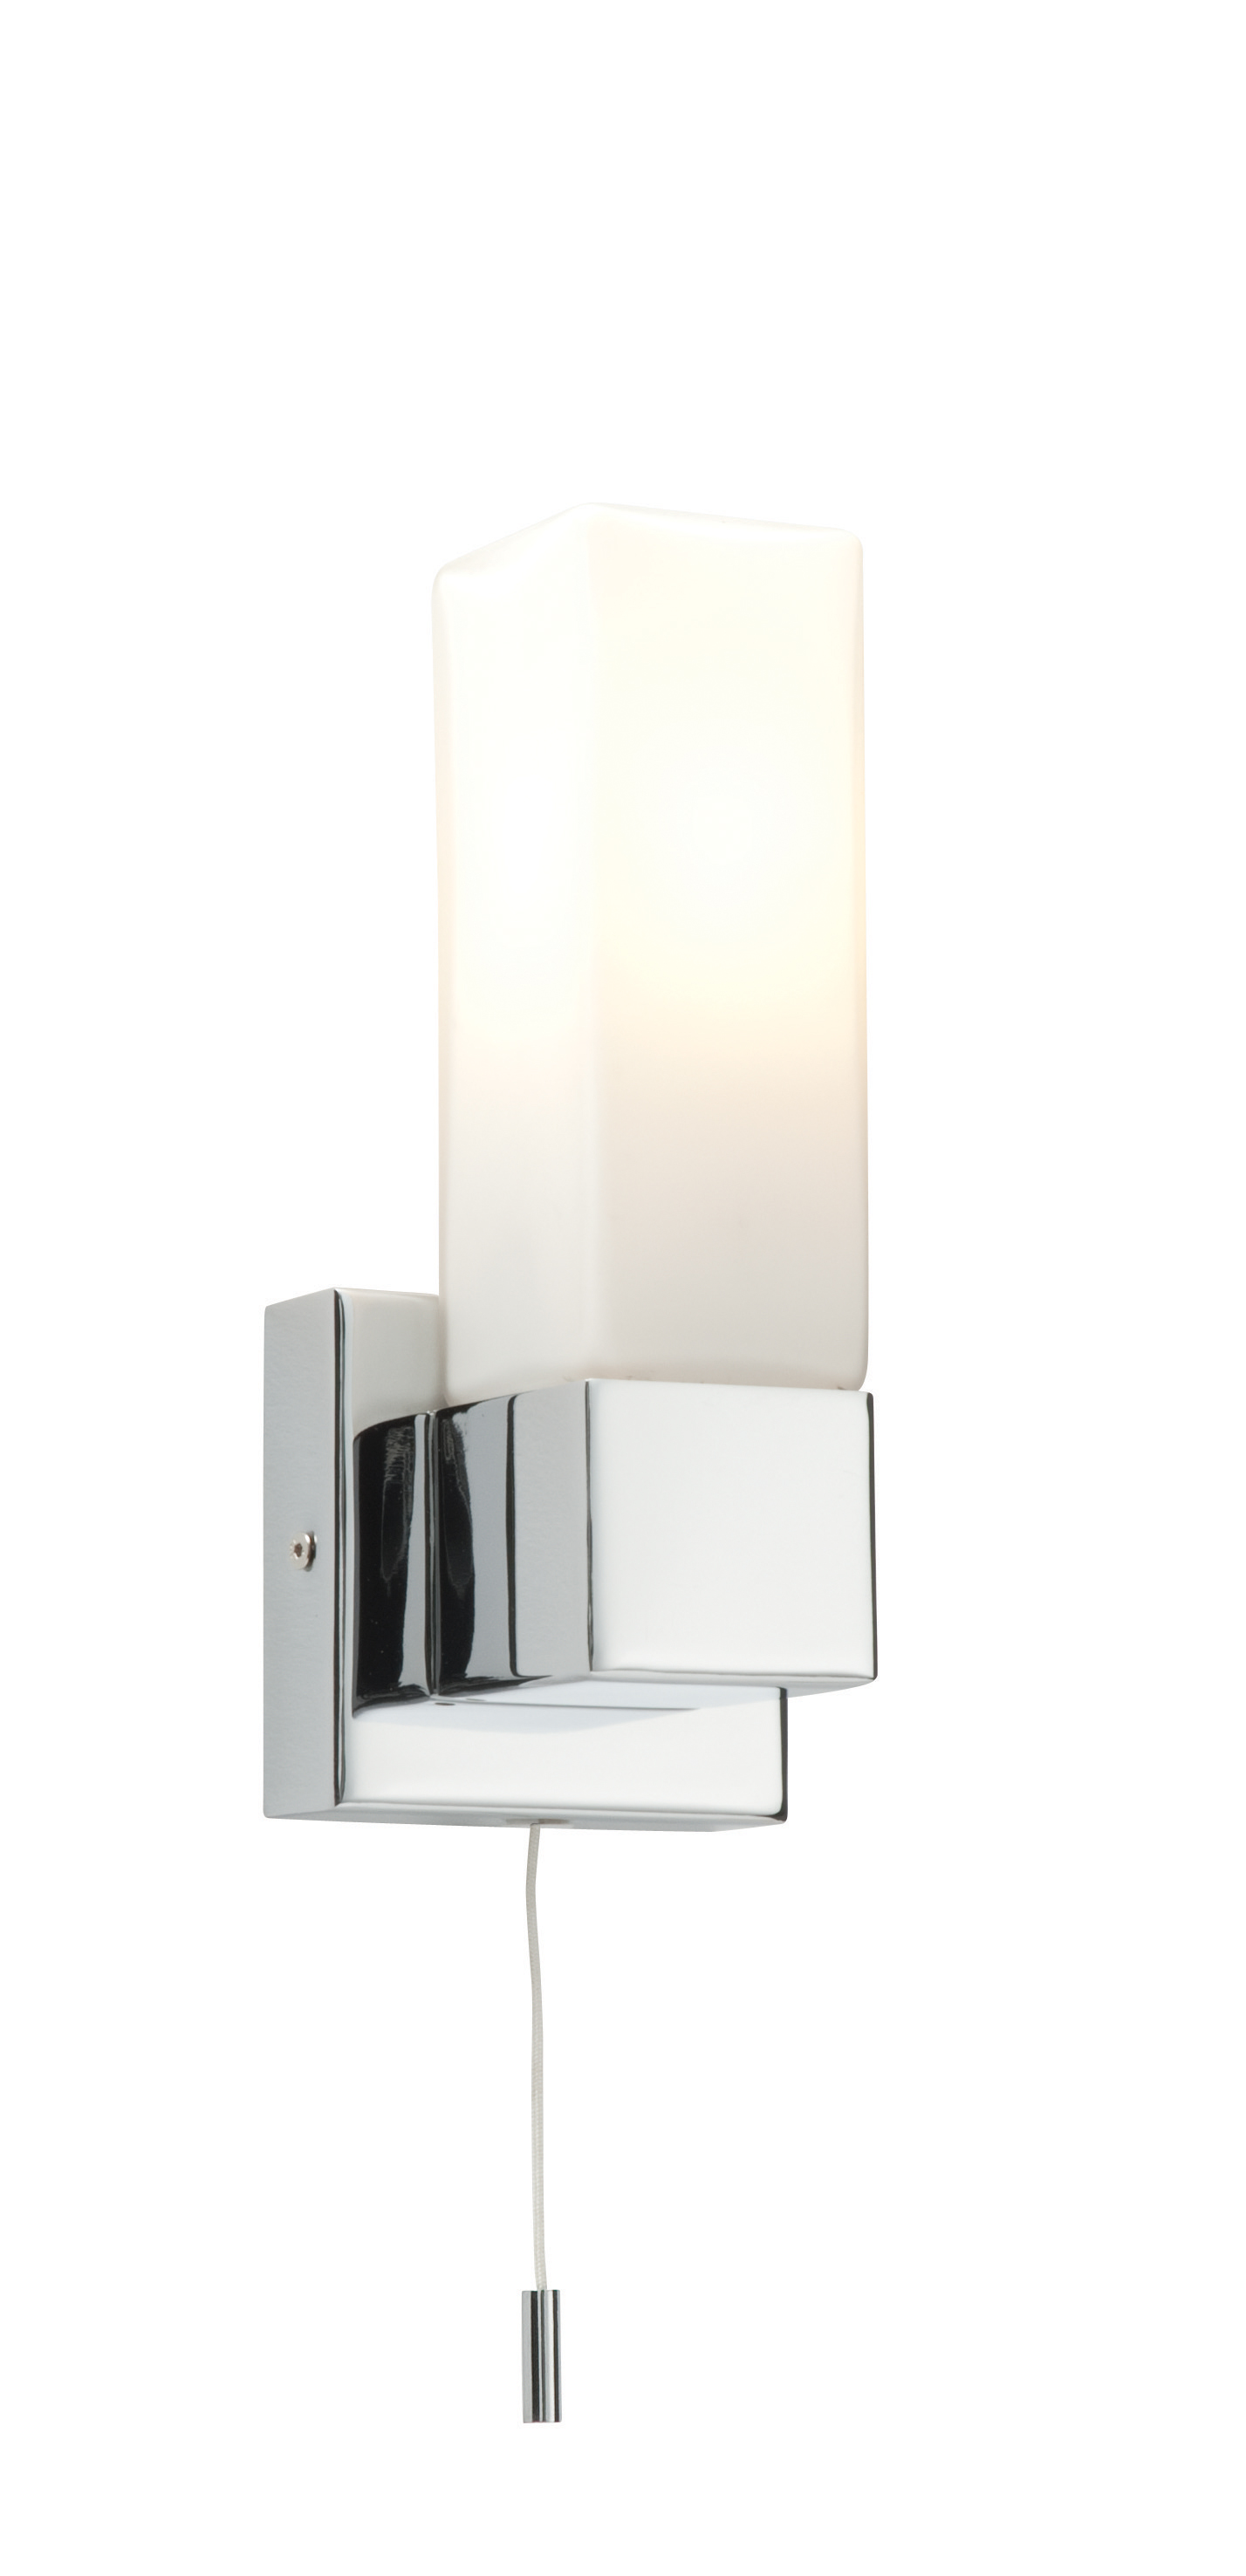 Saxby Square single bathroom wall light pull cord switch chrome glass 40W E14 eBay